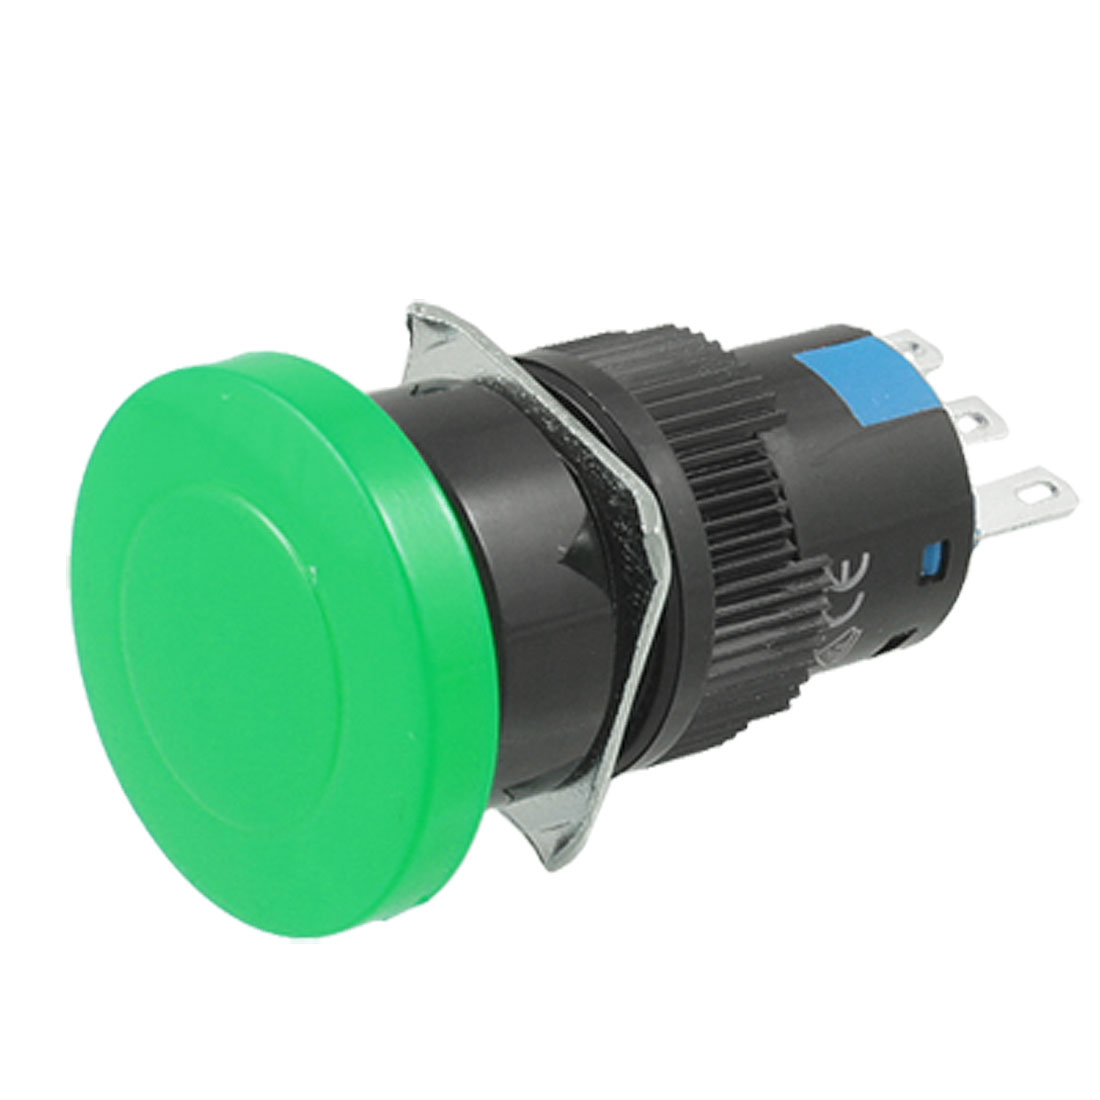 AC 220V Green Mushroom Button 1NO 1NC Type Momentary Contact Switch